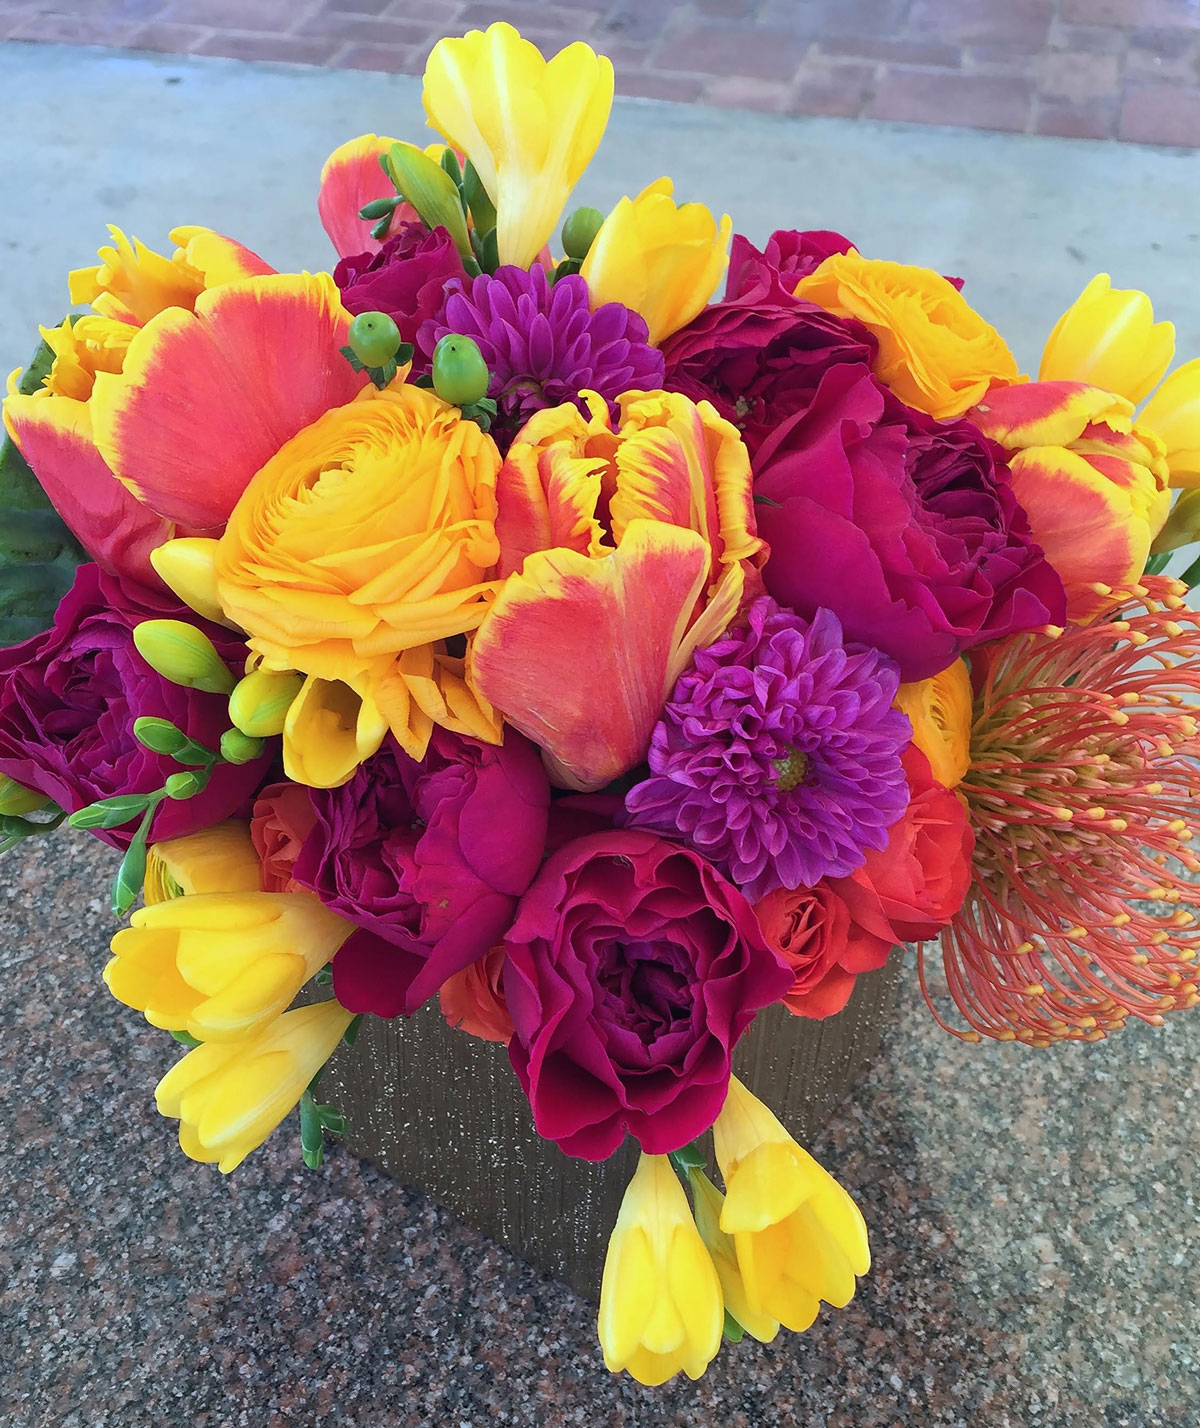 Bright-colored floral arrangement with parrot tulips